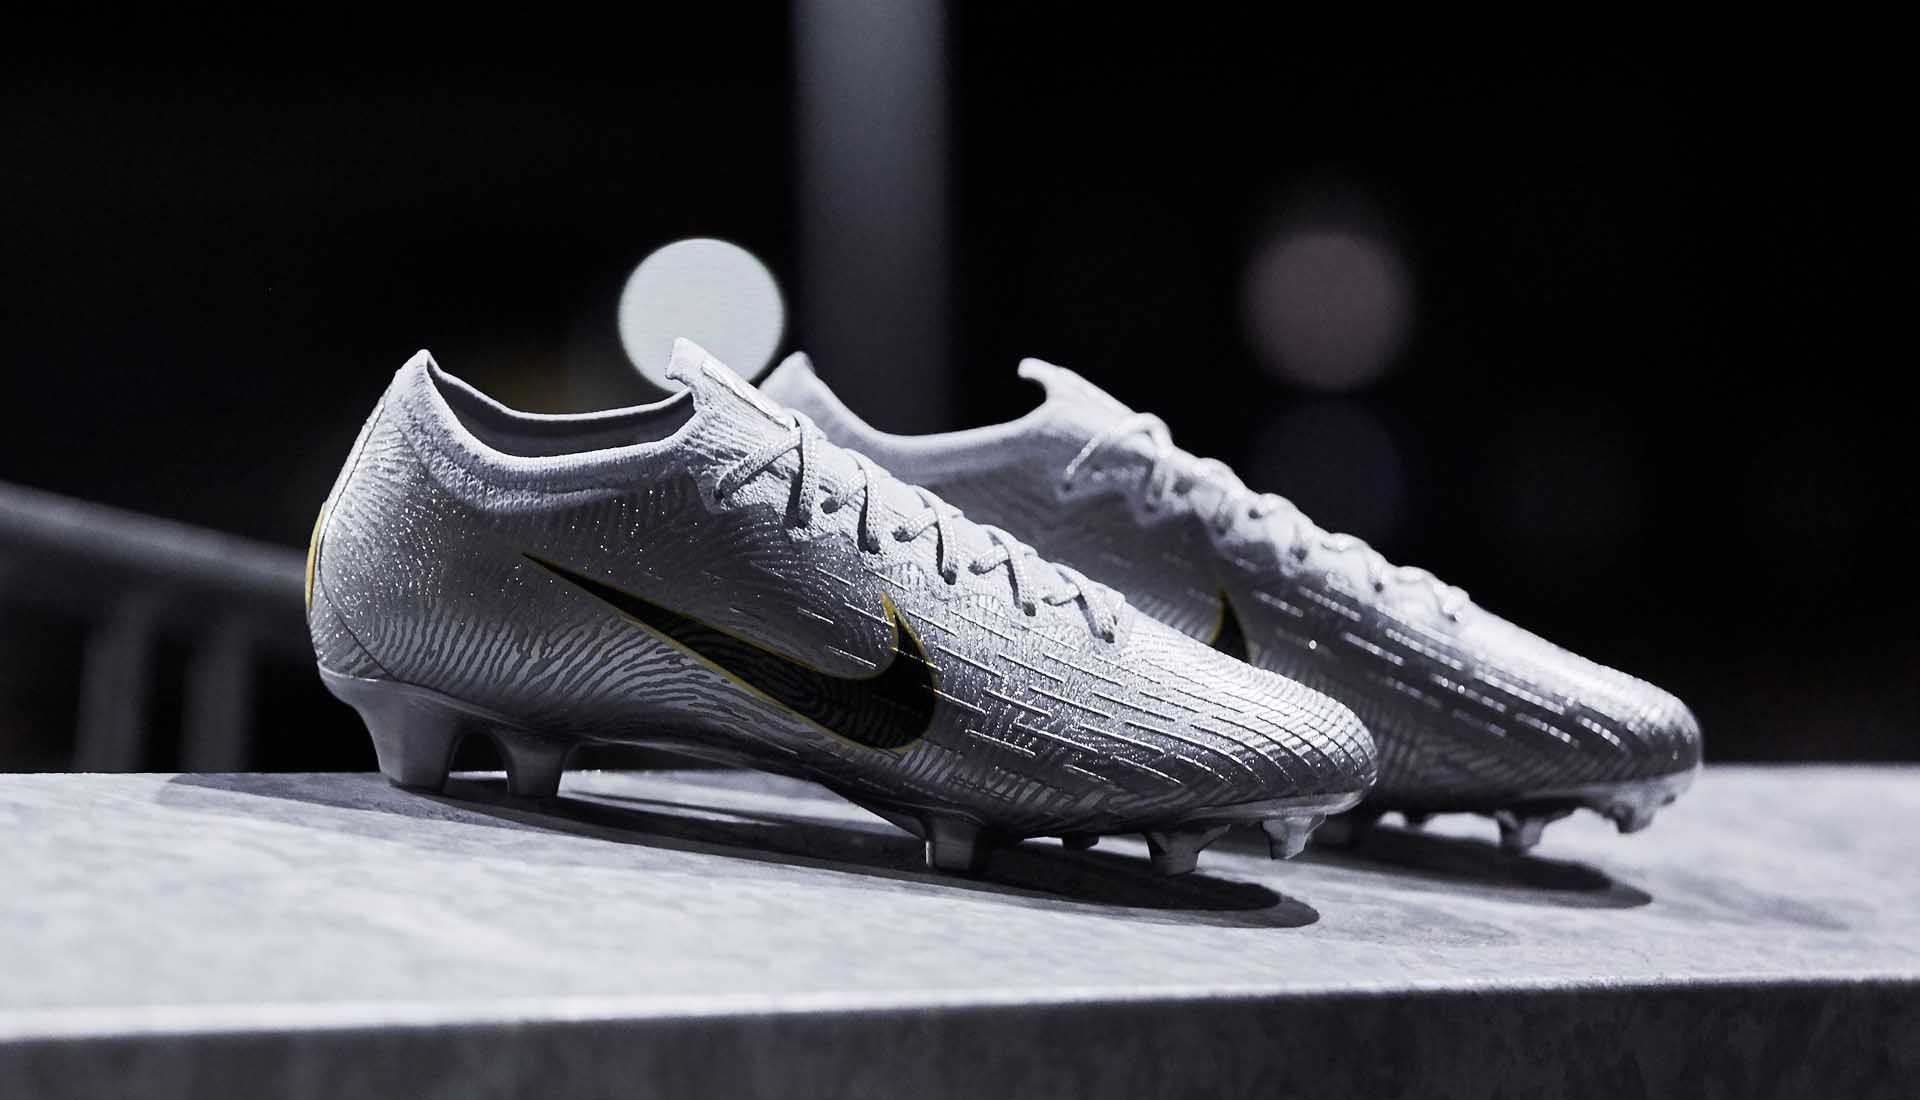 7a6bb856be8 Nike Launch Two Limited Edition  Golden Touch  Mercurials - SoccerBible.